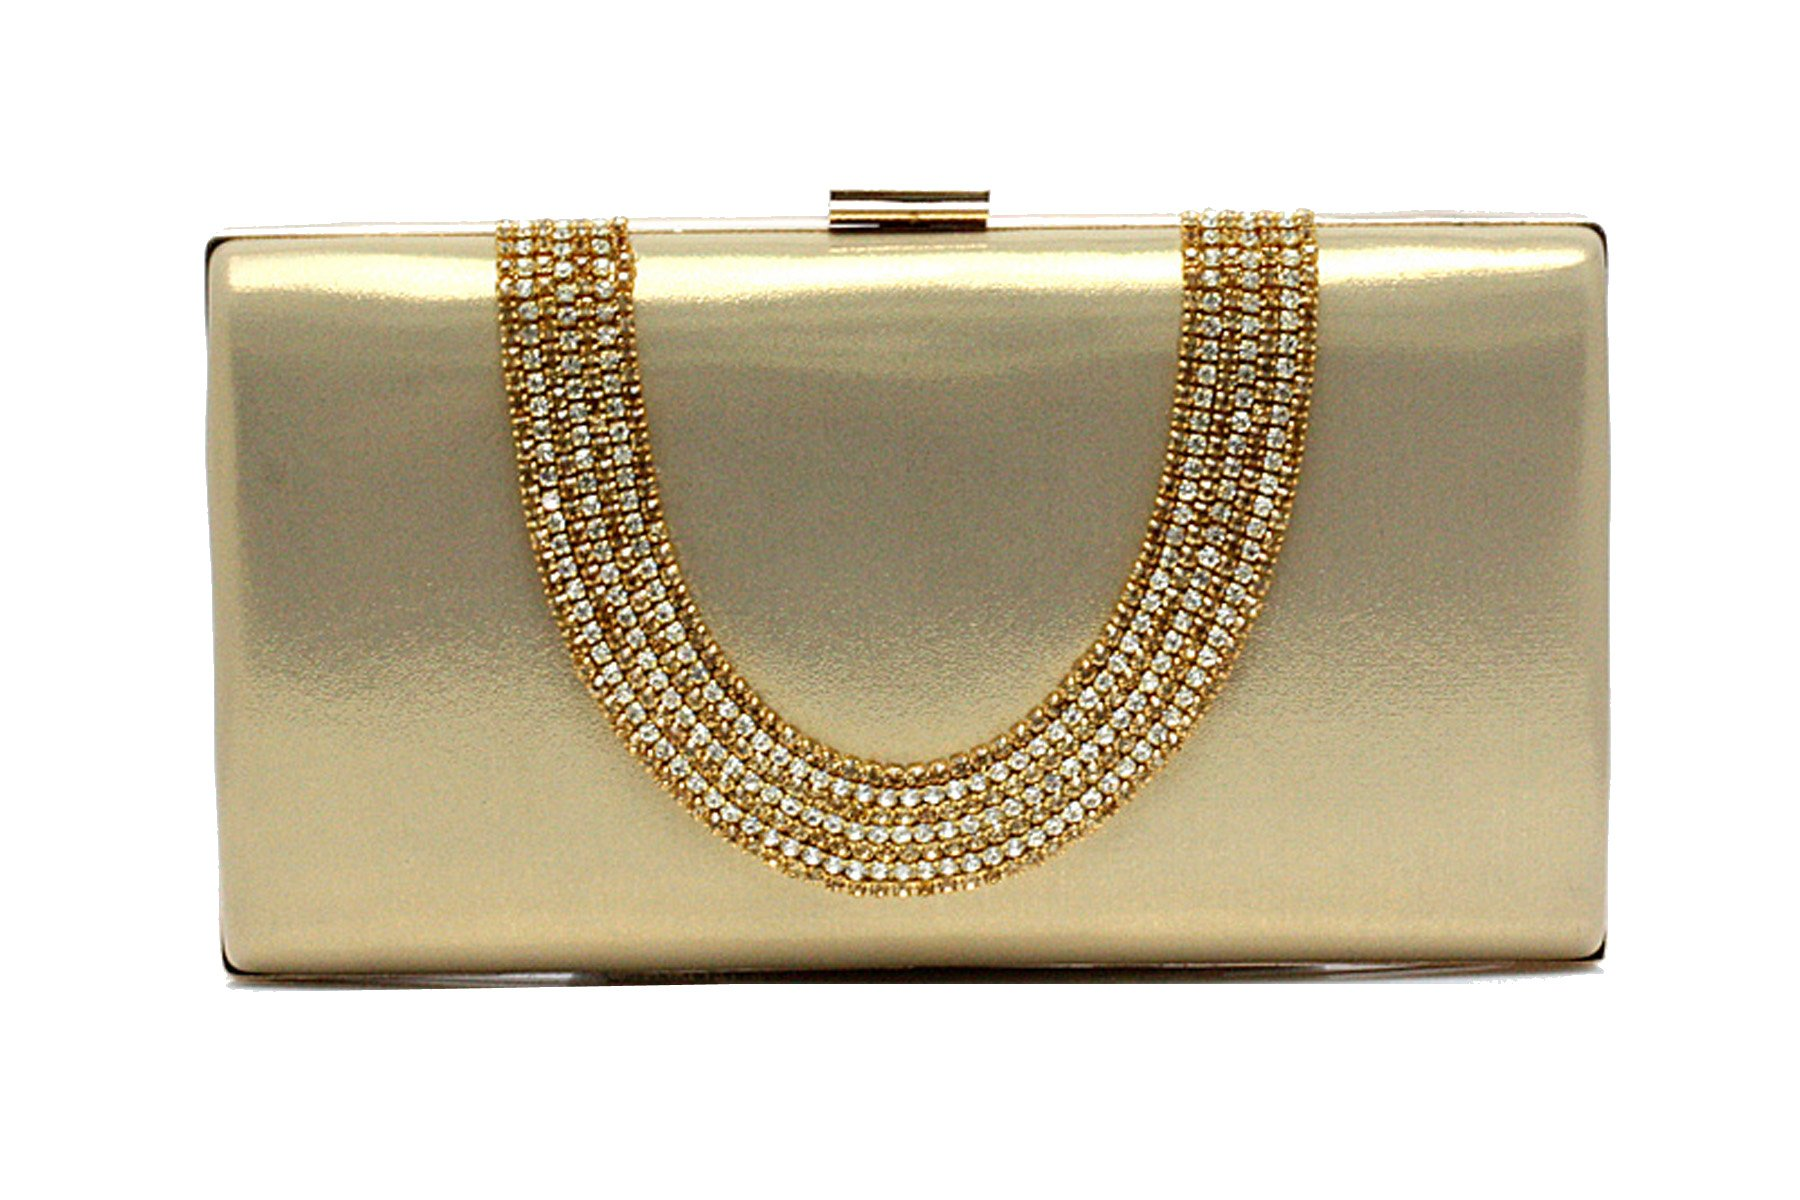 EPLAZA Large Capacity Rhinestone Beaded Women Evening Clutch Bags Handbags Wedding Party Purse (gold)